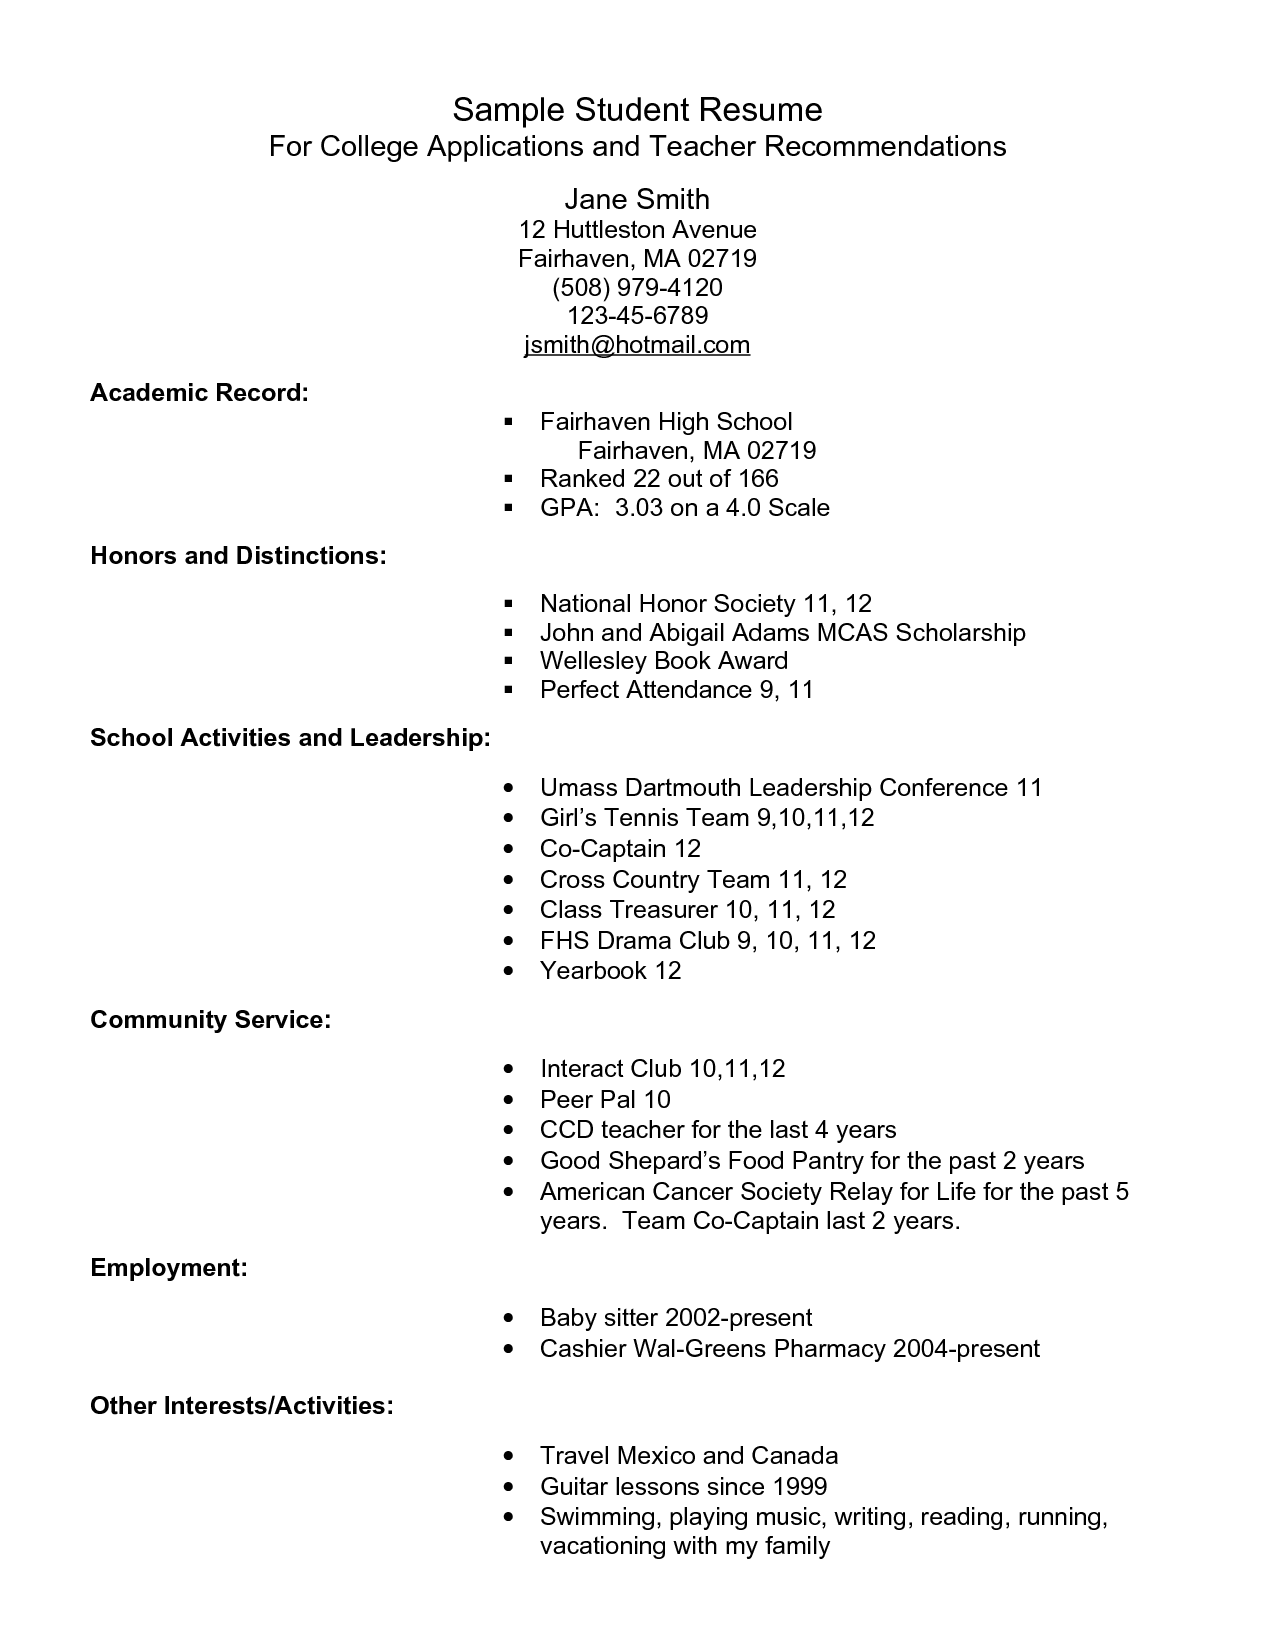 Resume Templates For Recent College Graduates Example Resume For High School Students For College Applications